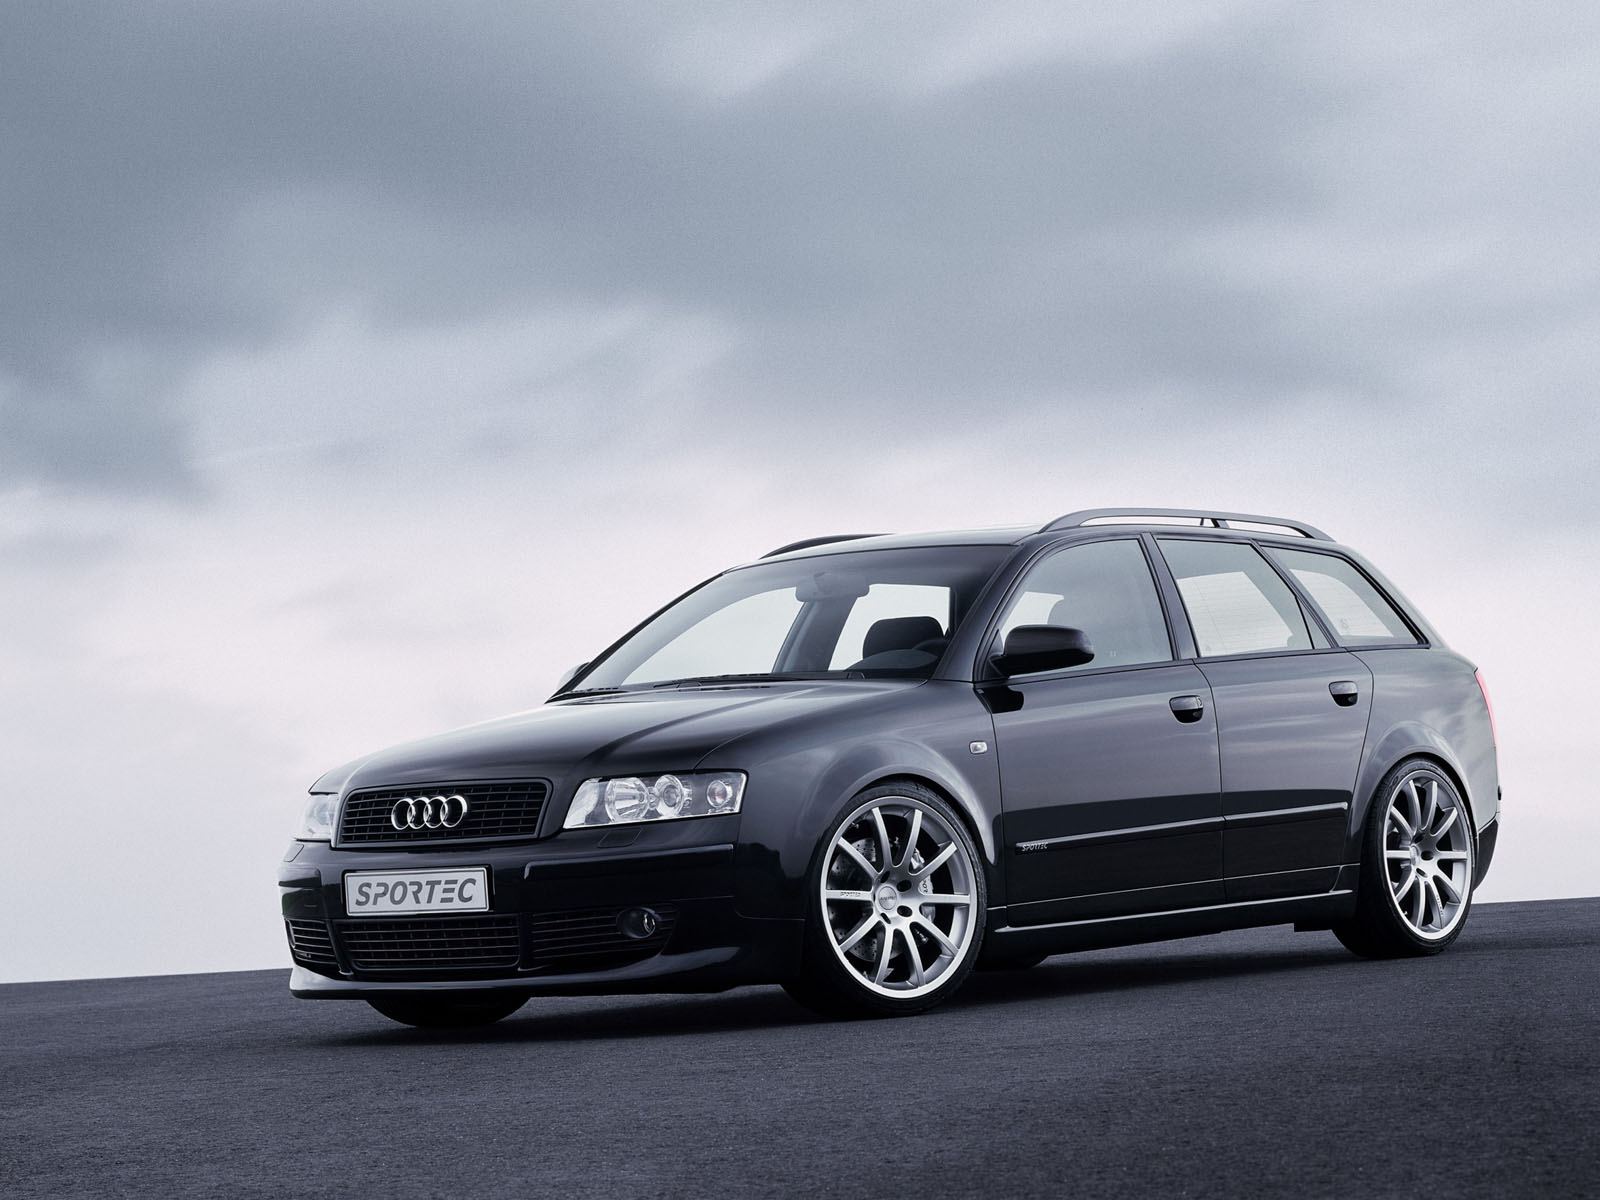 Sportec Audi A4 Avant Rs250 Photos Photogallery With 8